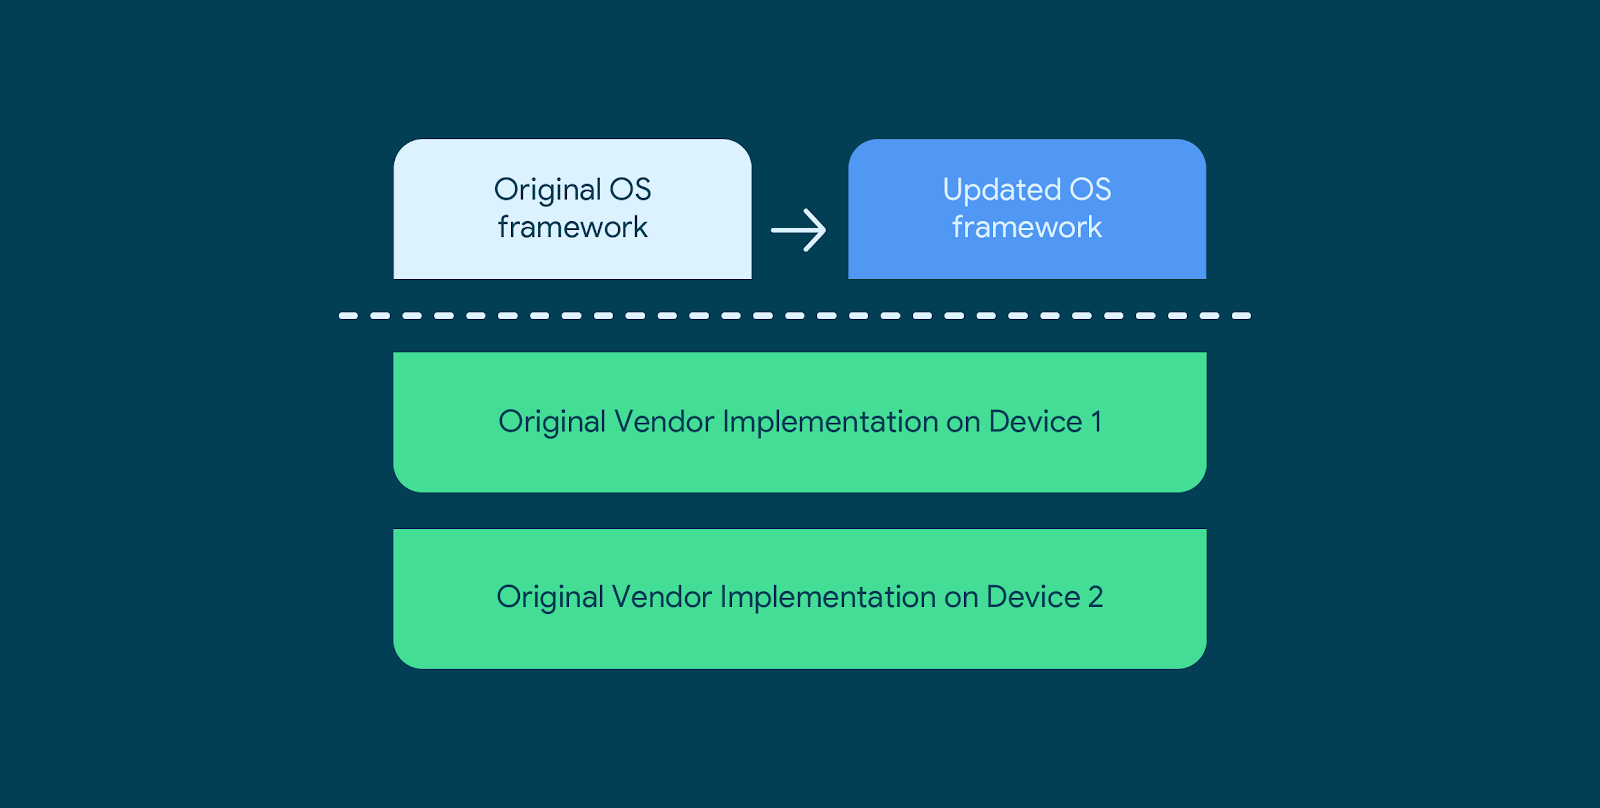 Chart comparing Original OS framework to Updated OS framework